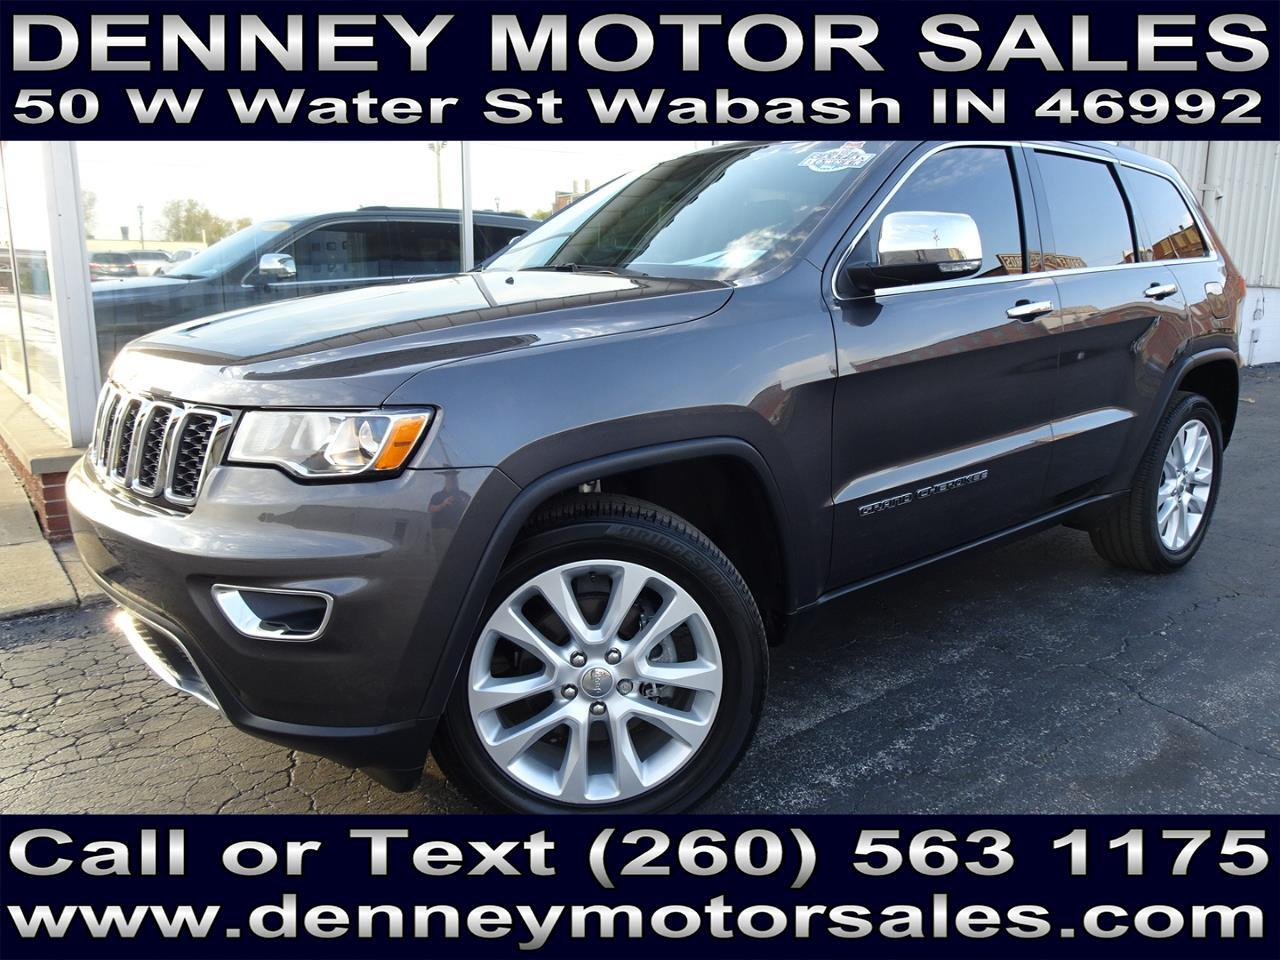 Used 2017 Jeep Grand Cherokee Limited 4wd For Sale In Wabash In 46992 Denney Motor Sales Inc